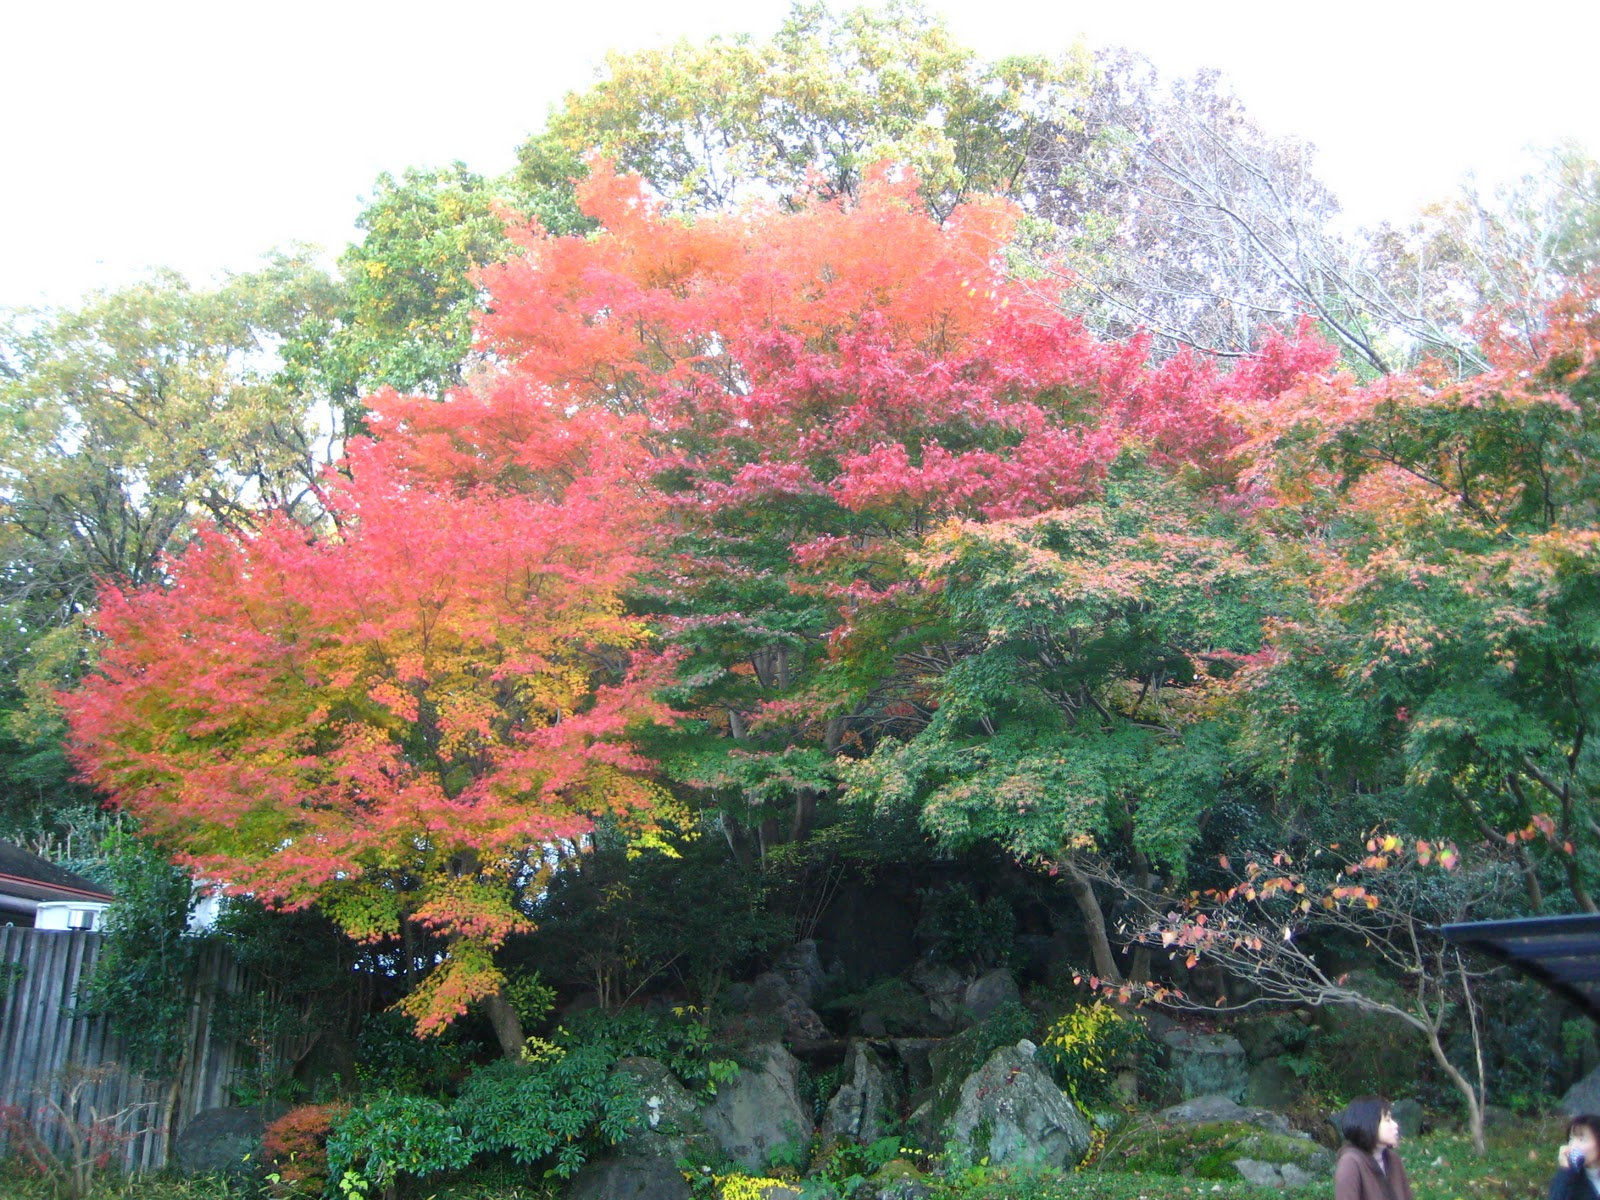 Victoria In Japan Land: Higashiyama Zoo & Botanical Gardens